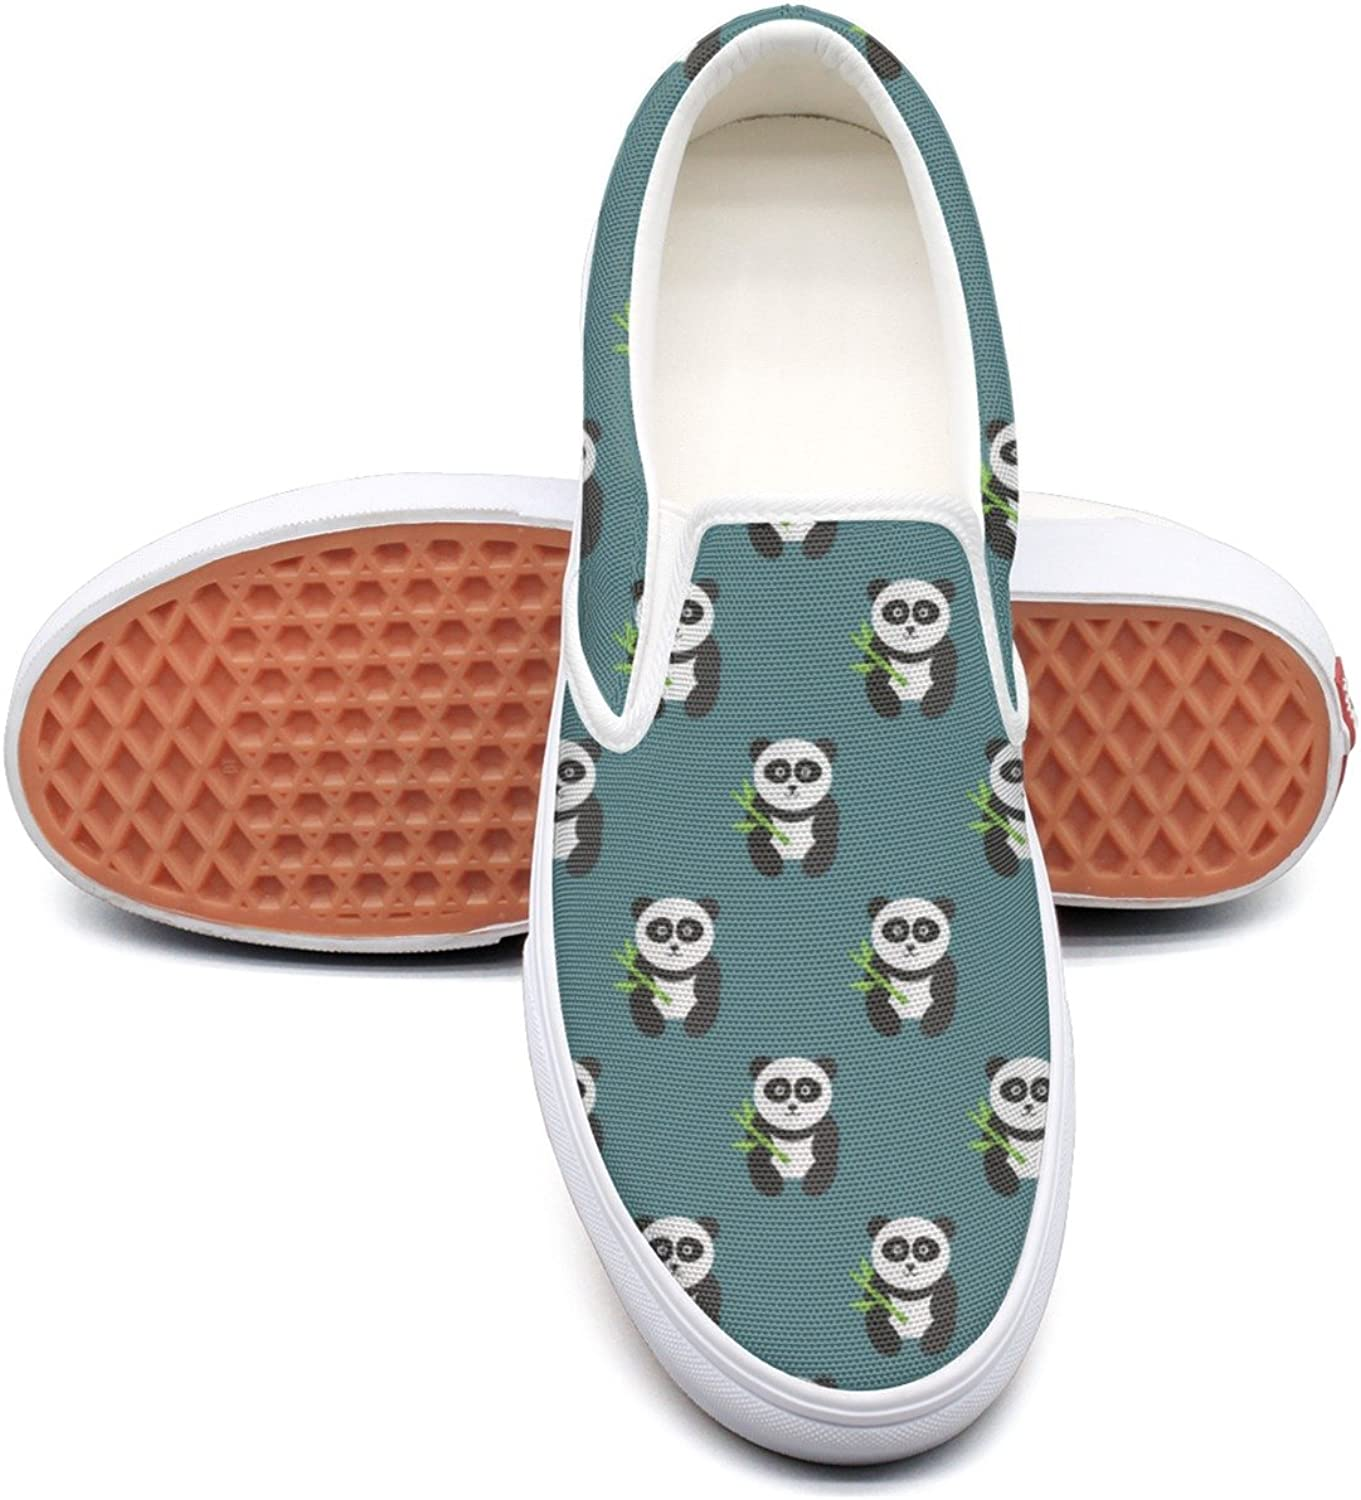 Refyds-es Large Panda Bear with Cute Animals Women's Fashion Slip On Low Top Lightweight Canvas Sneaker